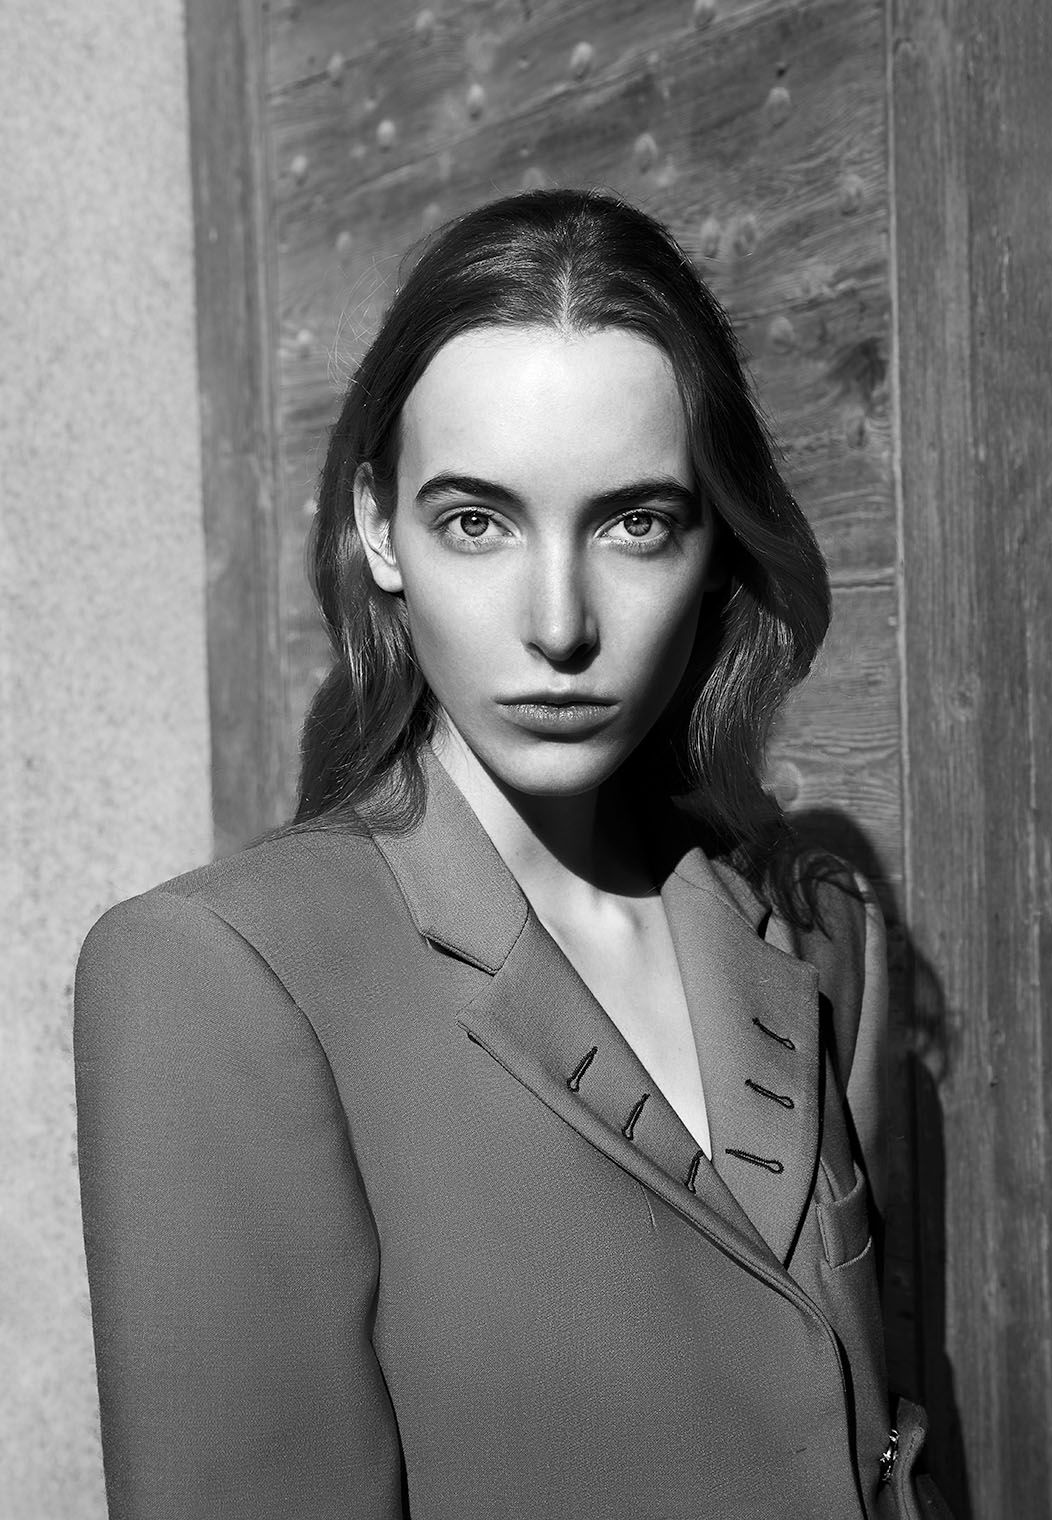 intense female portrait in black and white by Los Angeles and New York photographer Robert Wilde